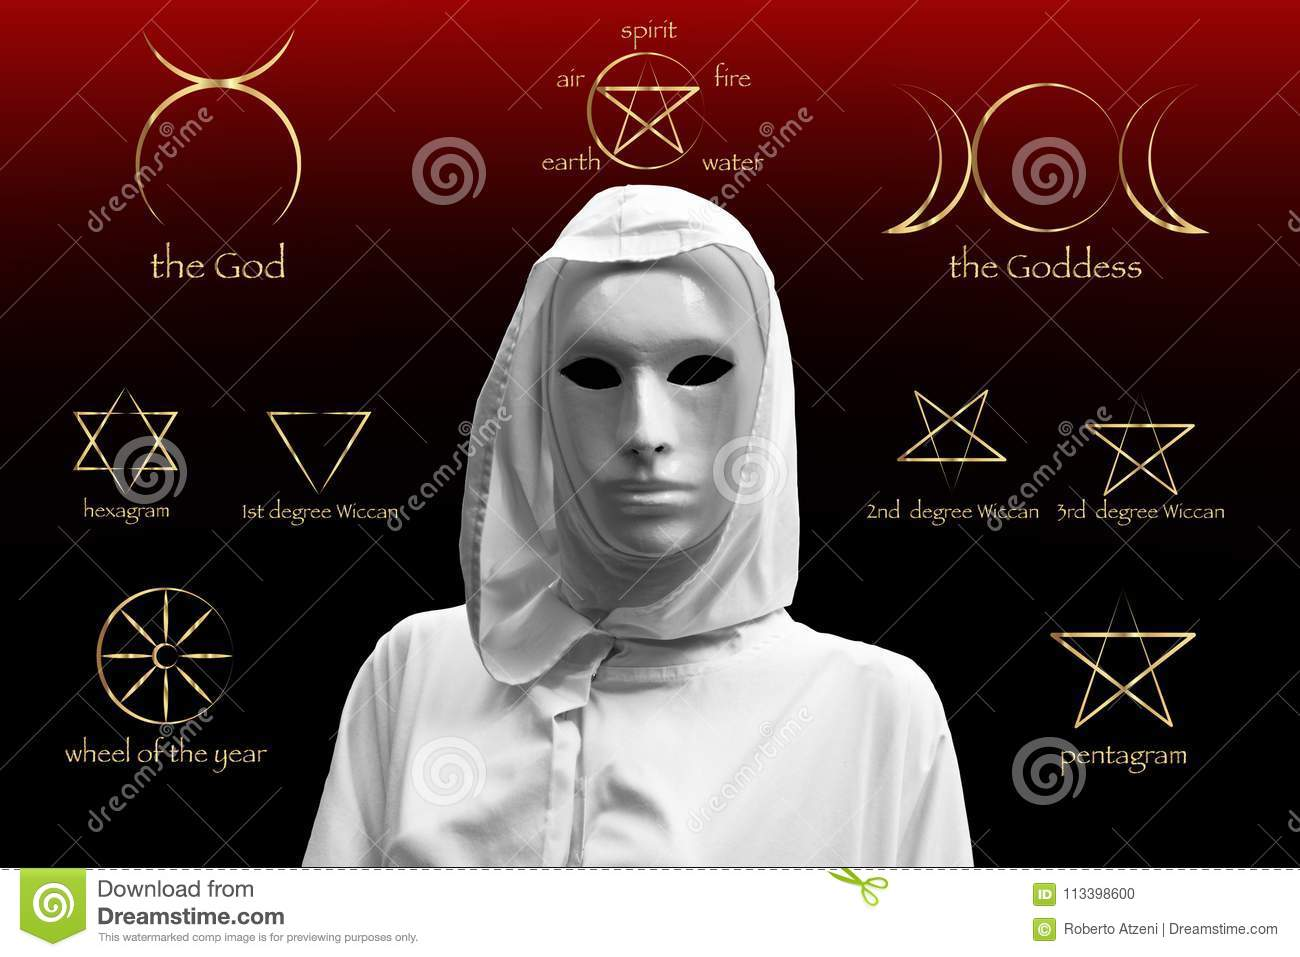 Priestess of red magic, sorcerers with magical mask occult Masonic Lodge. Golden Set of Witches runes, wiccan divination symbols.